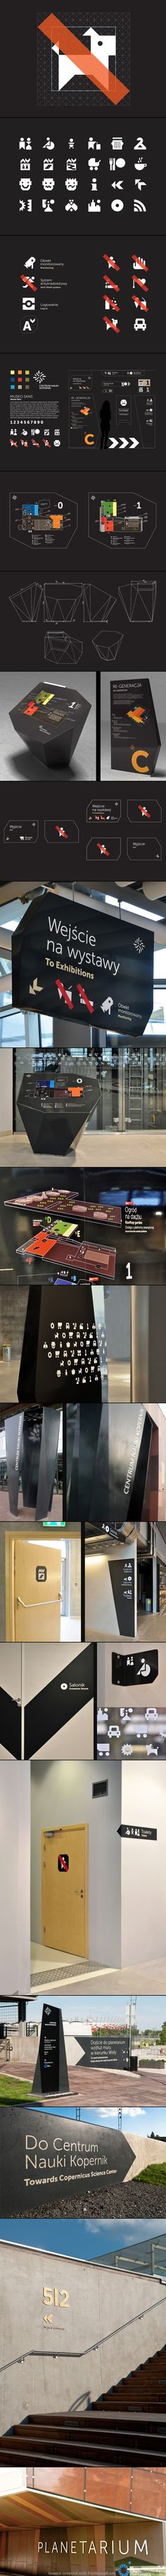 Copernicus Science Center - Visual information system